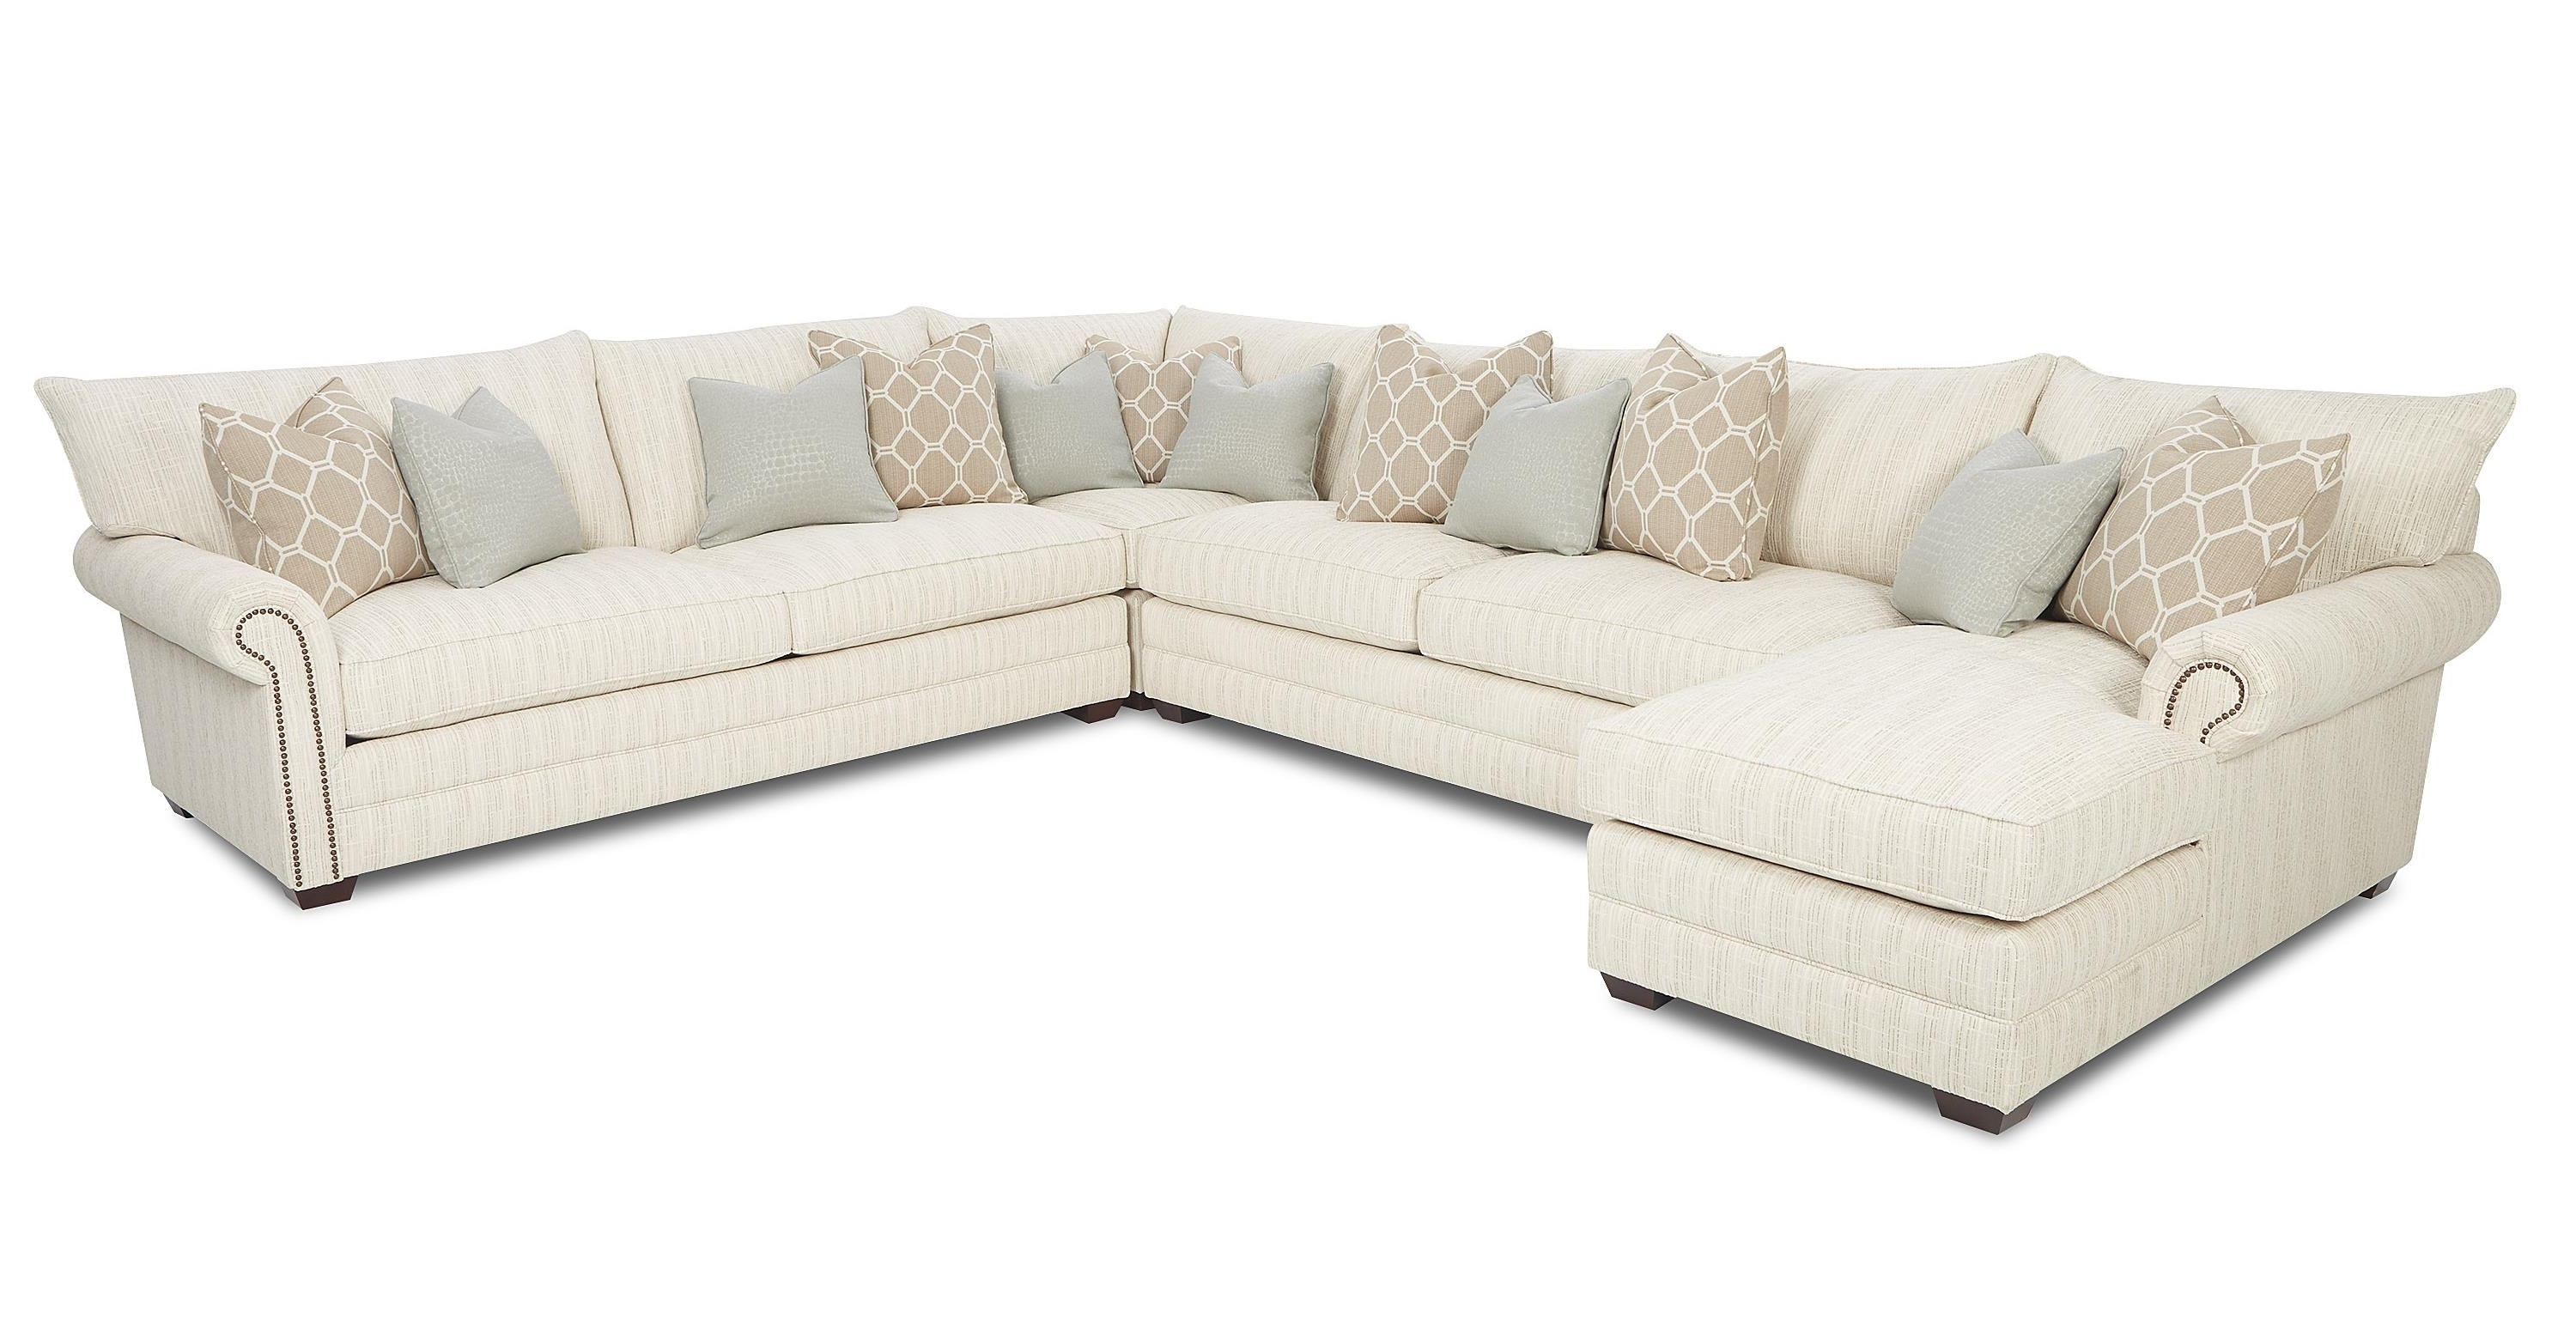 Most Popular Sectional Sofas With Nailhead Trim Within Traditional Sectional Sofa With Nailhead Trim And Chaise Lounge (View 7 of 15)